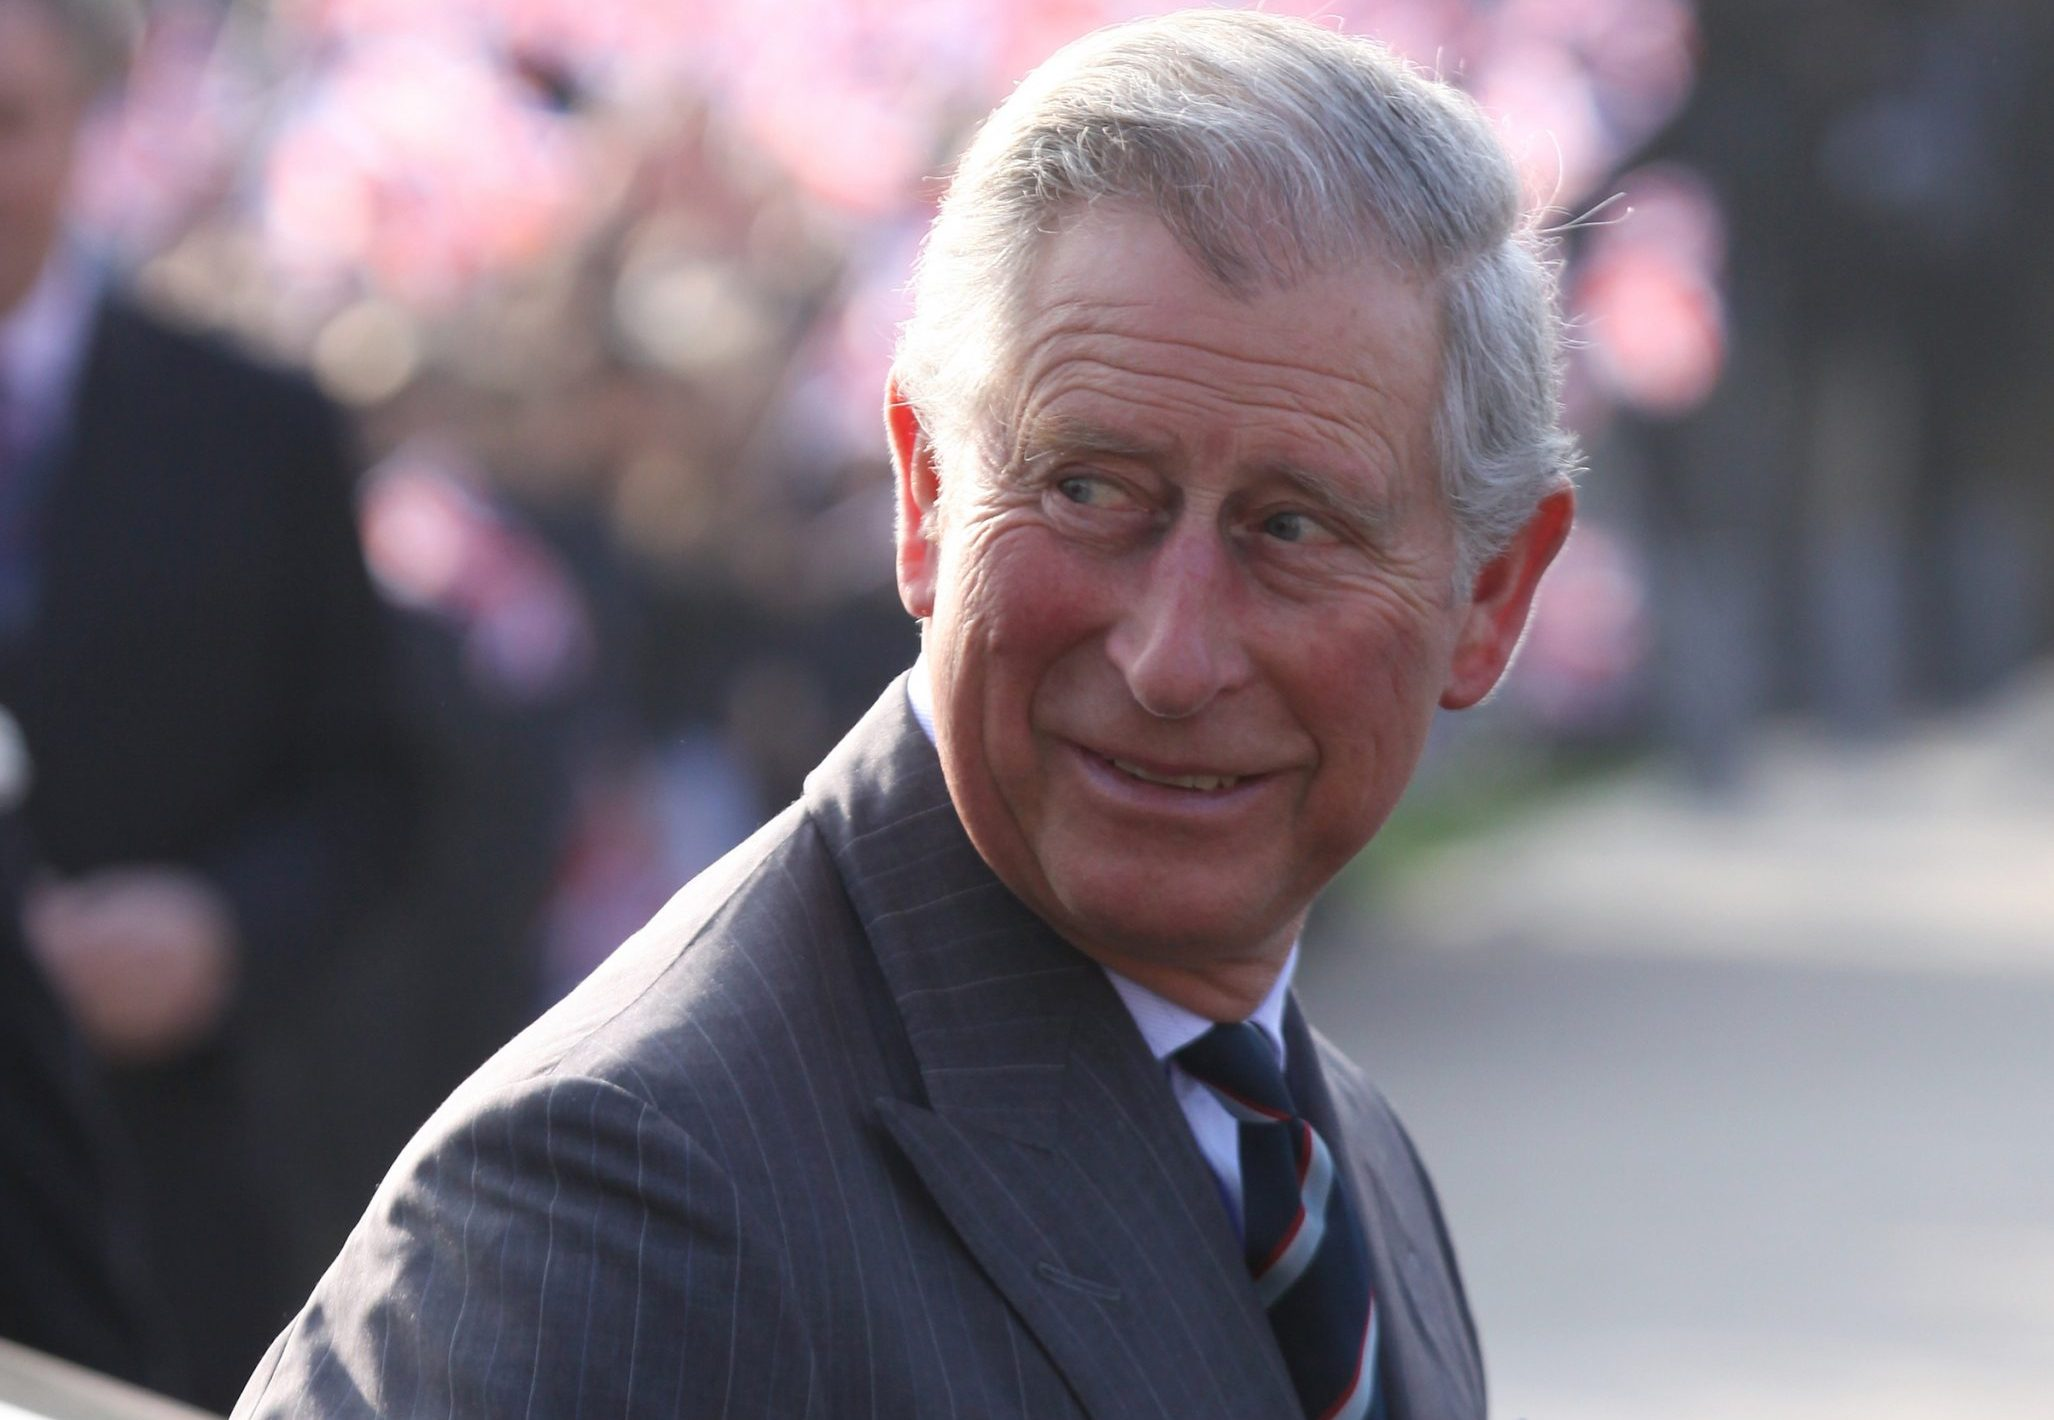 prins charles (Foto: Twocoms, Shutterstock)